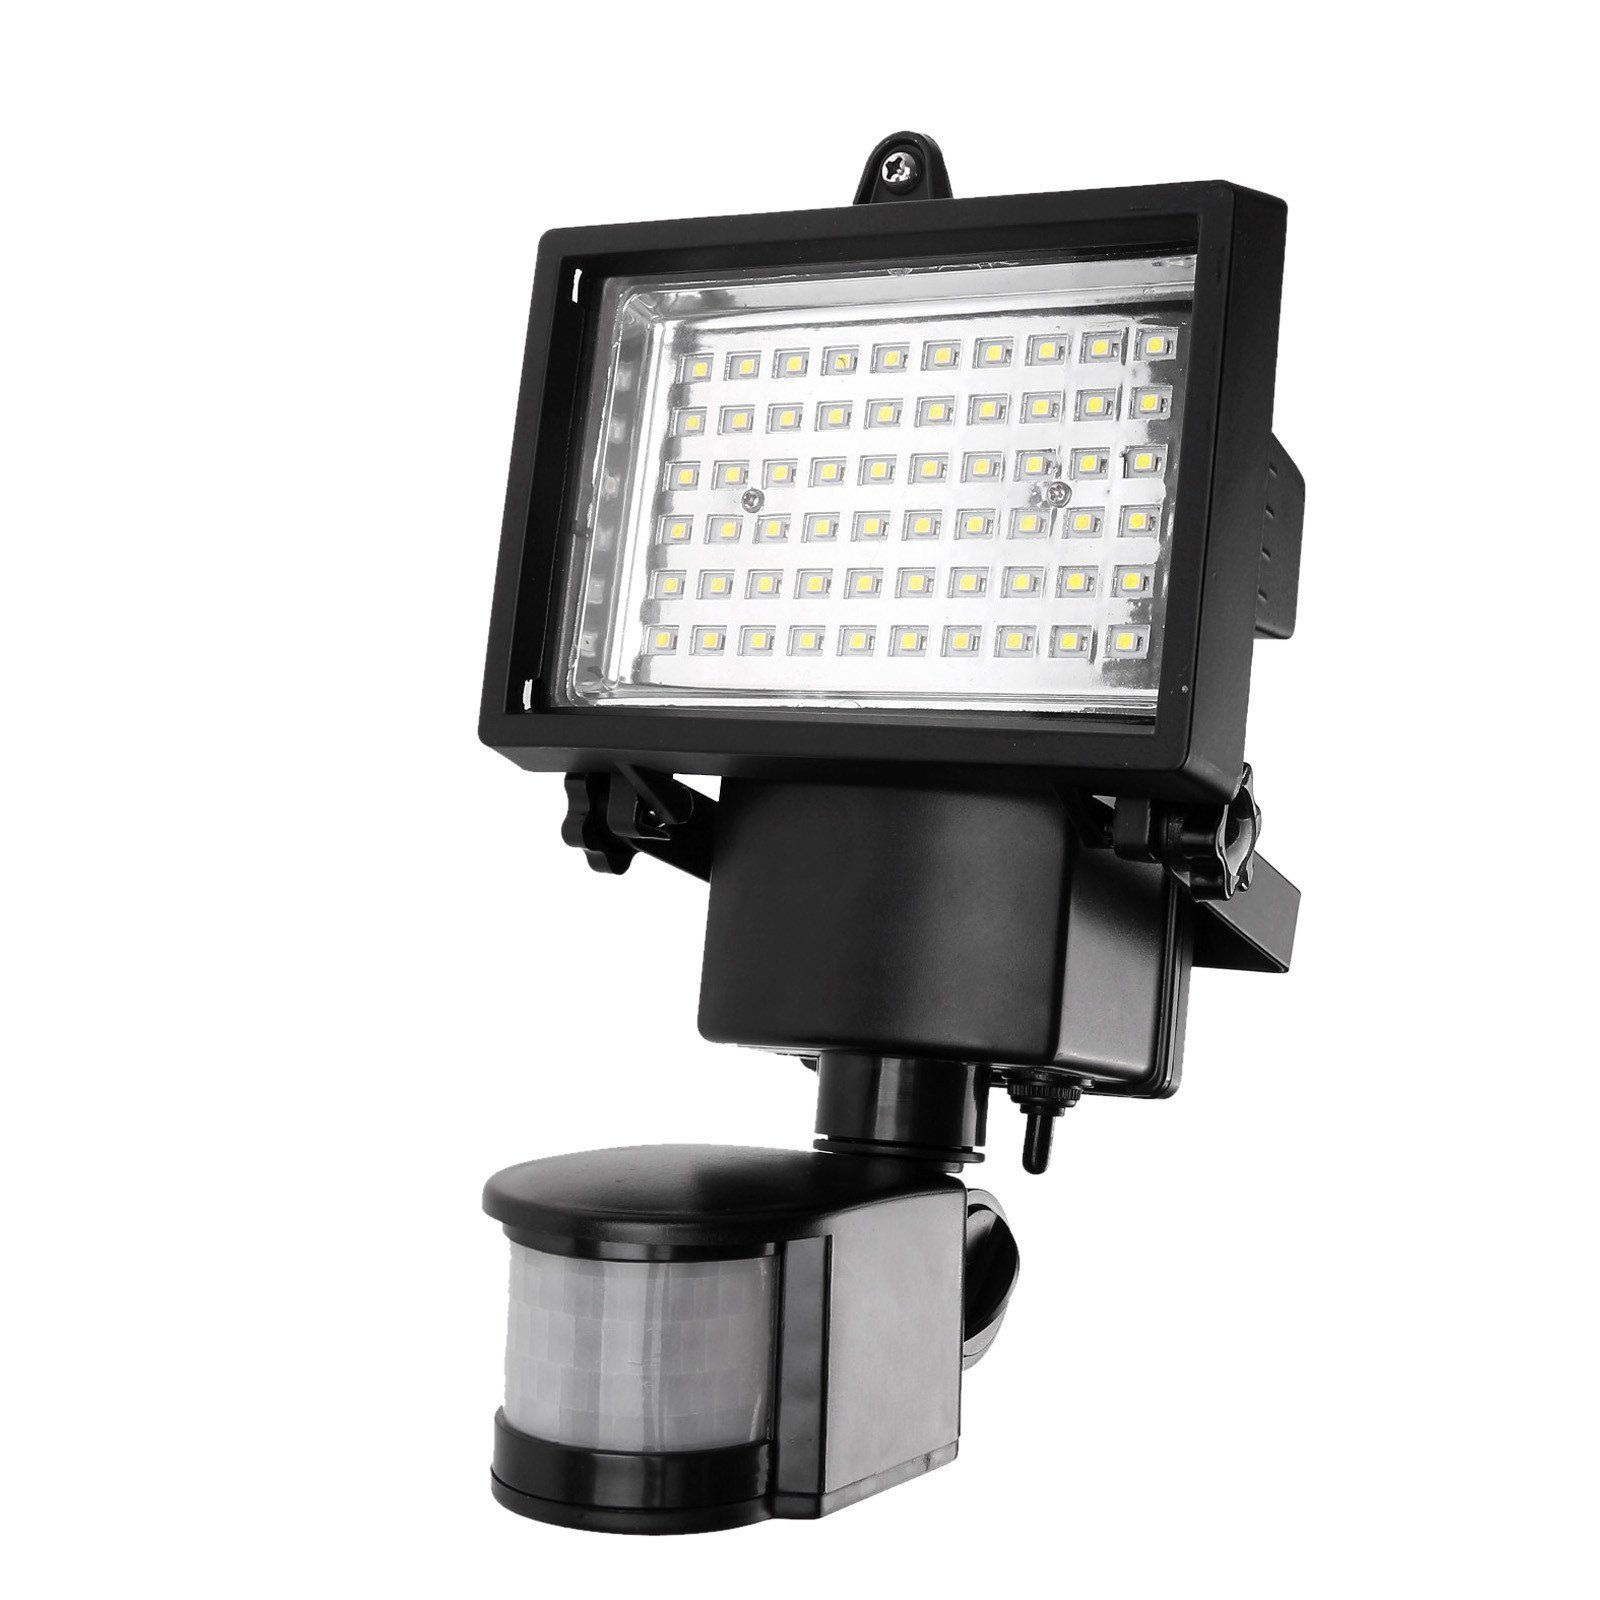 60 Led Solar Motion Light Security Lamp With Pir For Driveway Porches Decks Sheds 5m Detection Range Solar Motion Lights Solar Lights Garden Solar Power Panels